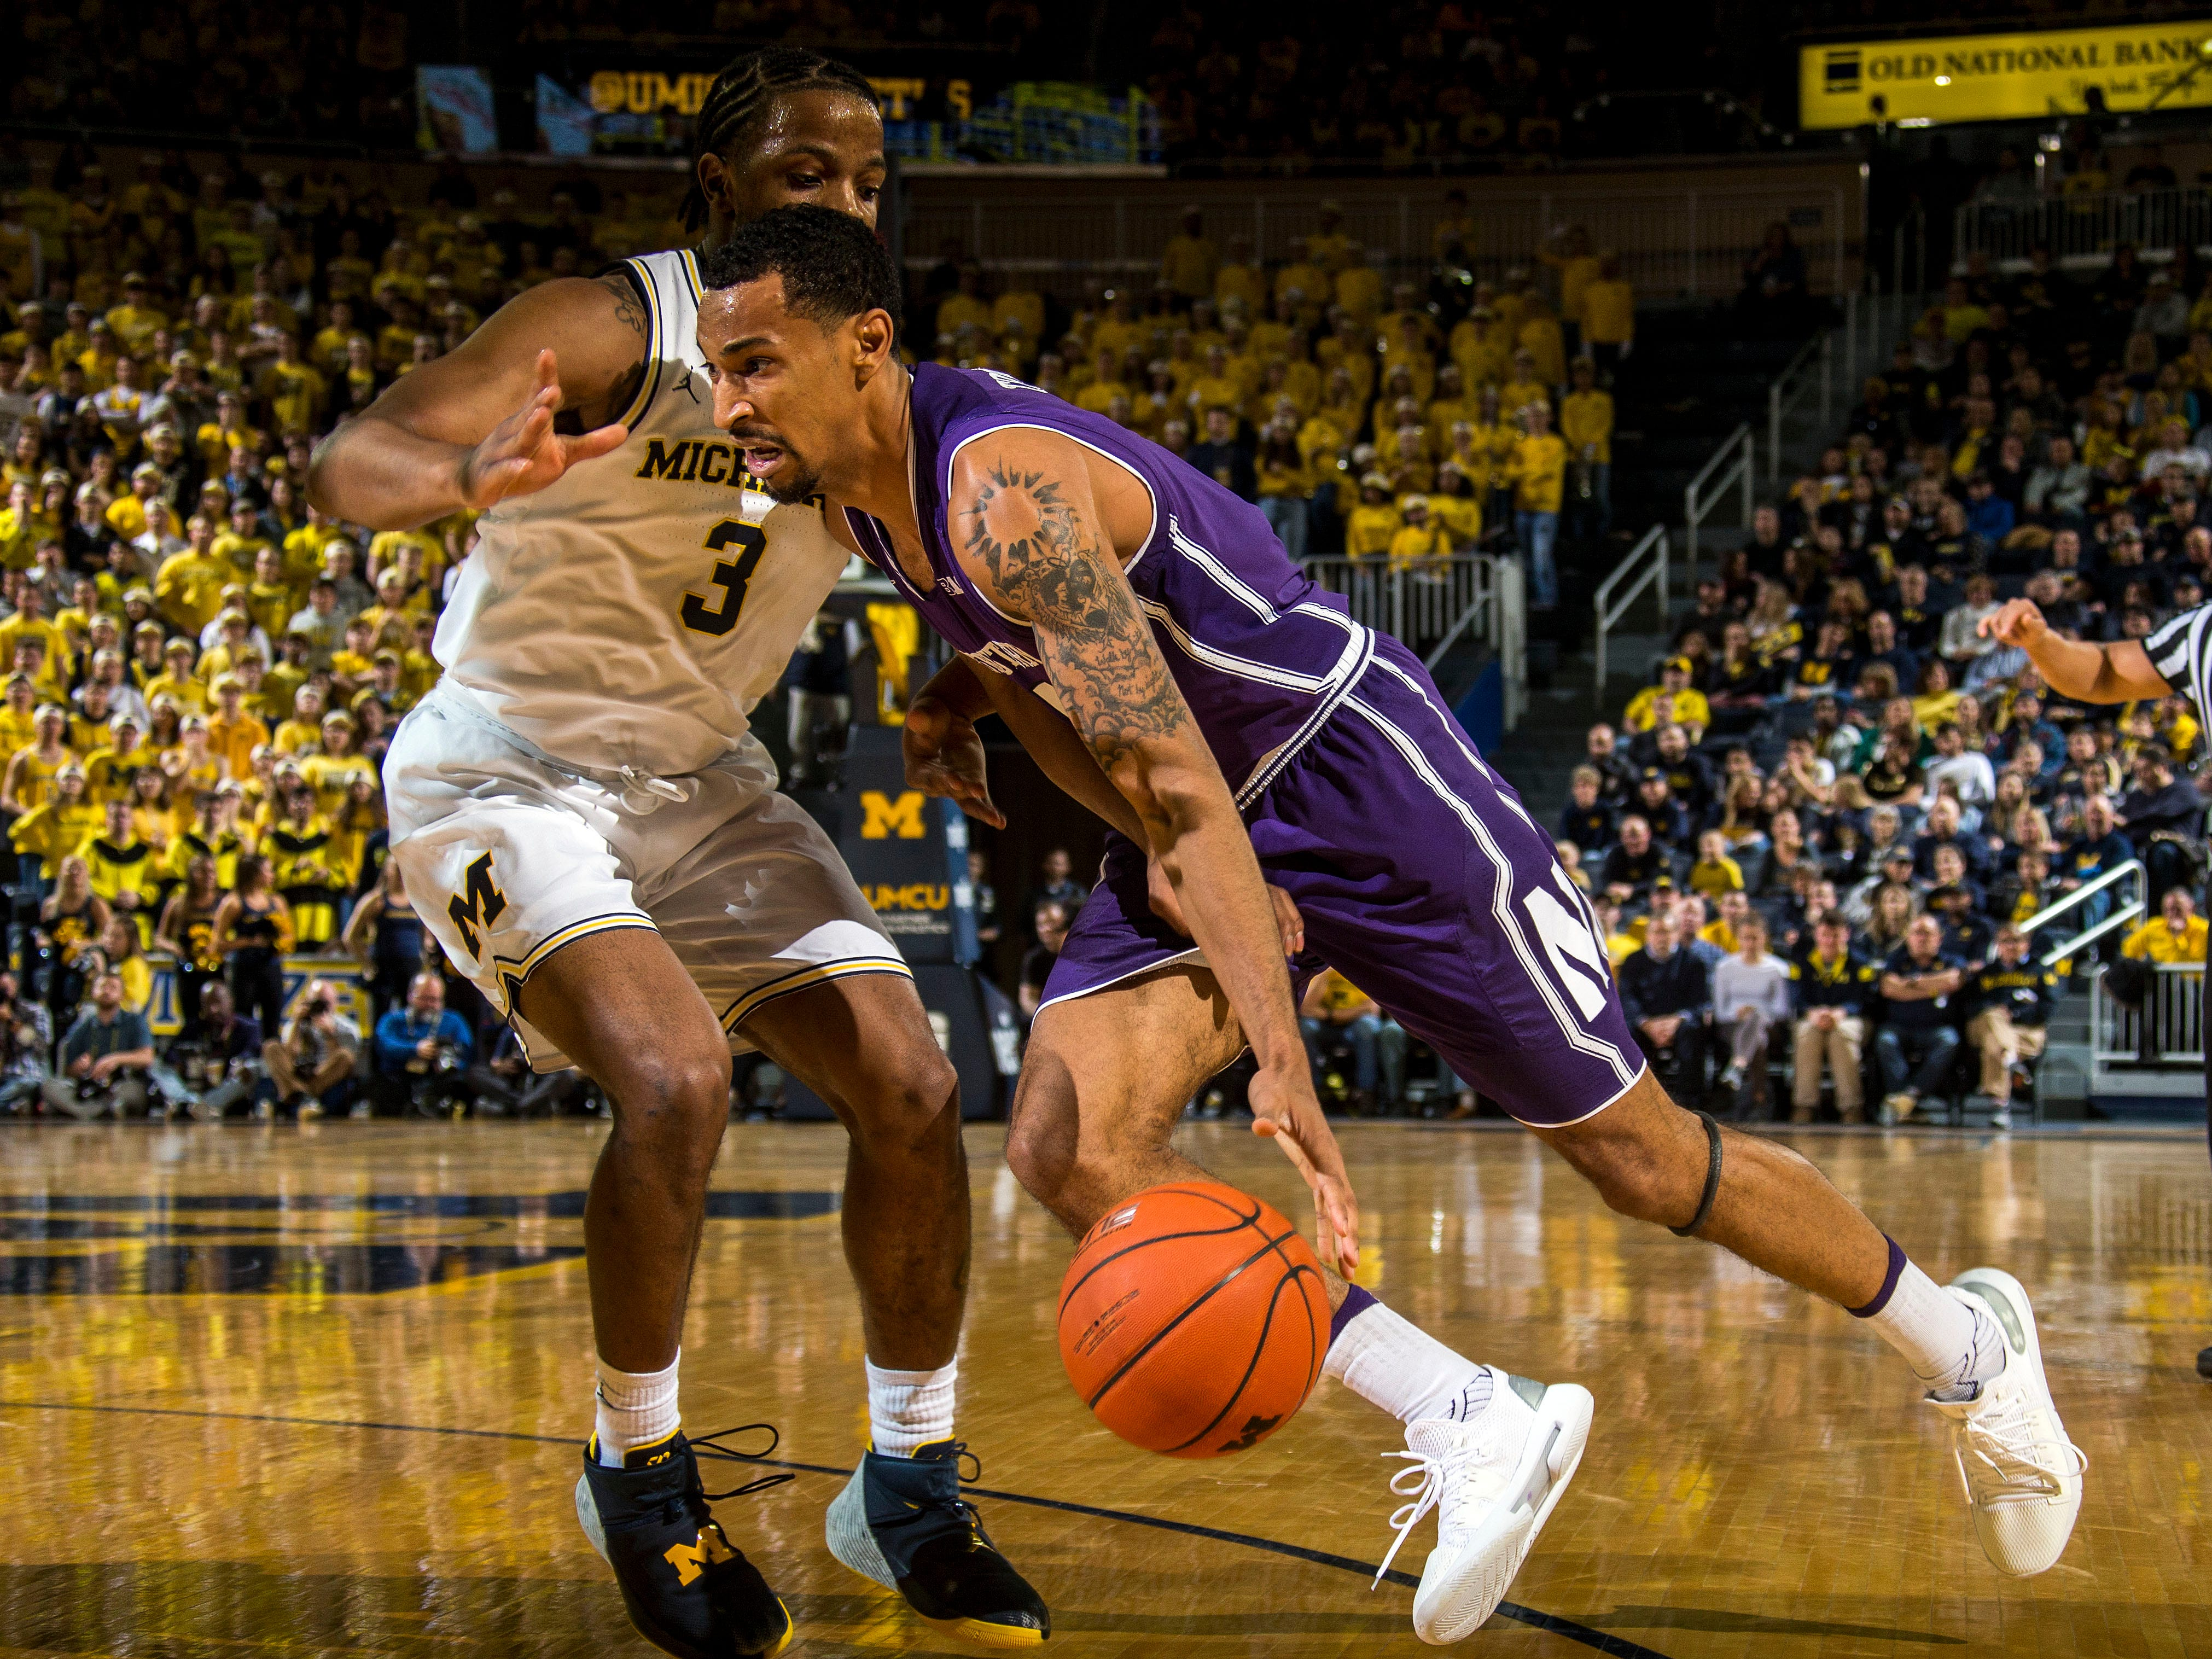 Northwestern guard Ryan Taylor, right, drives against Michigan guard Zavier Simpson (3) in the first half.